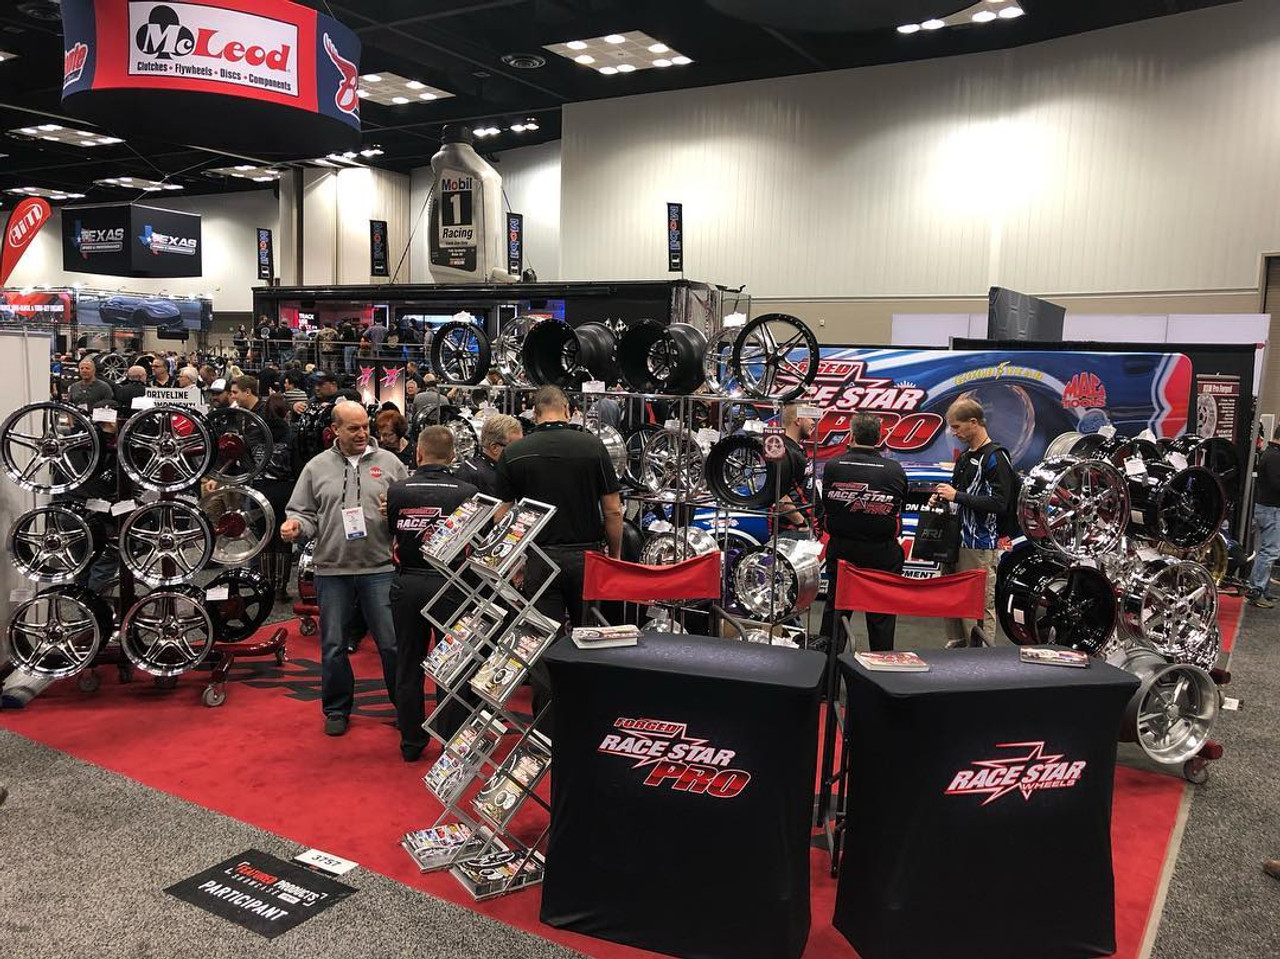 Race Star Pro Forged Wheels Performance Racing Industry  TRADE SHOW DISPLAY 2018